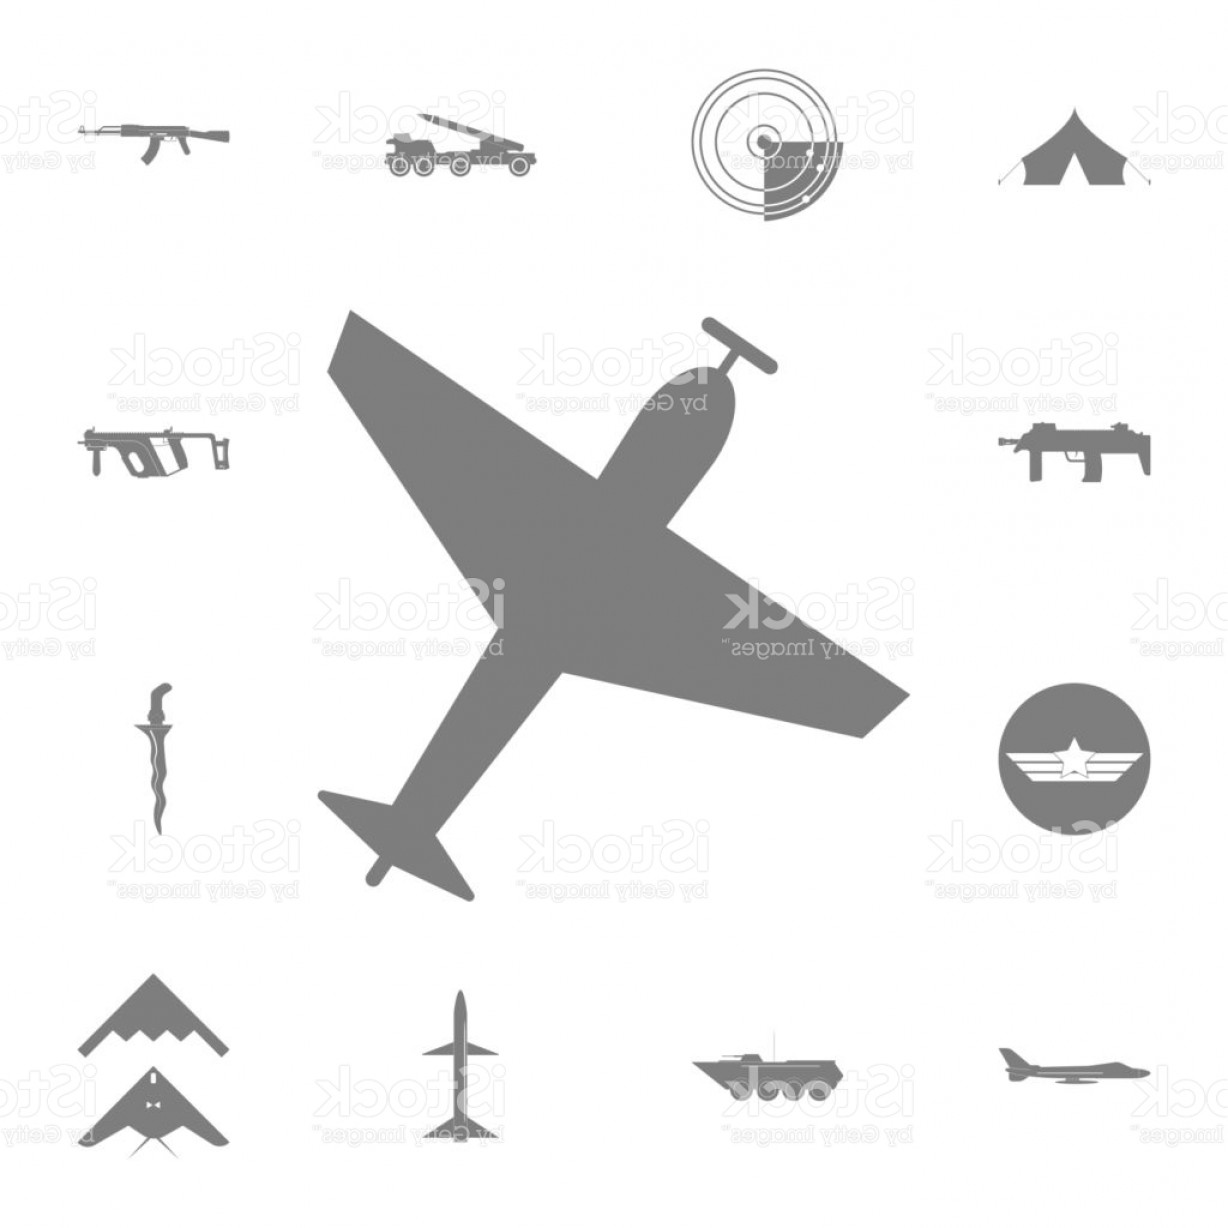 Climbing Army Vector: Airplane With Screw Plane Silhouette Icon Set Of Military Elements Icon Quality Gm